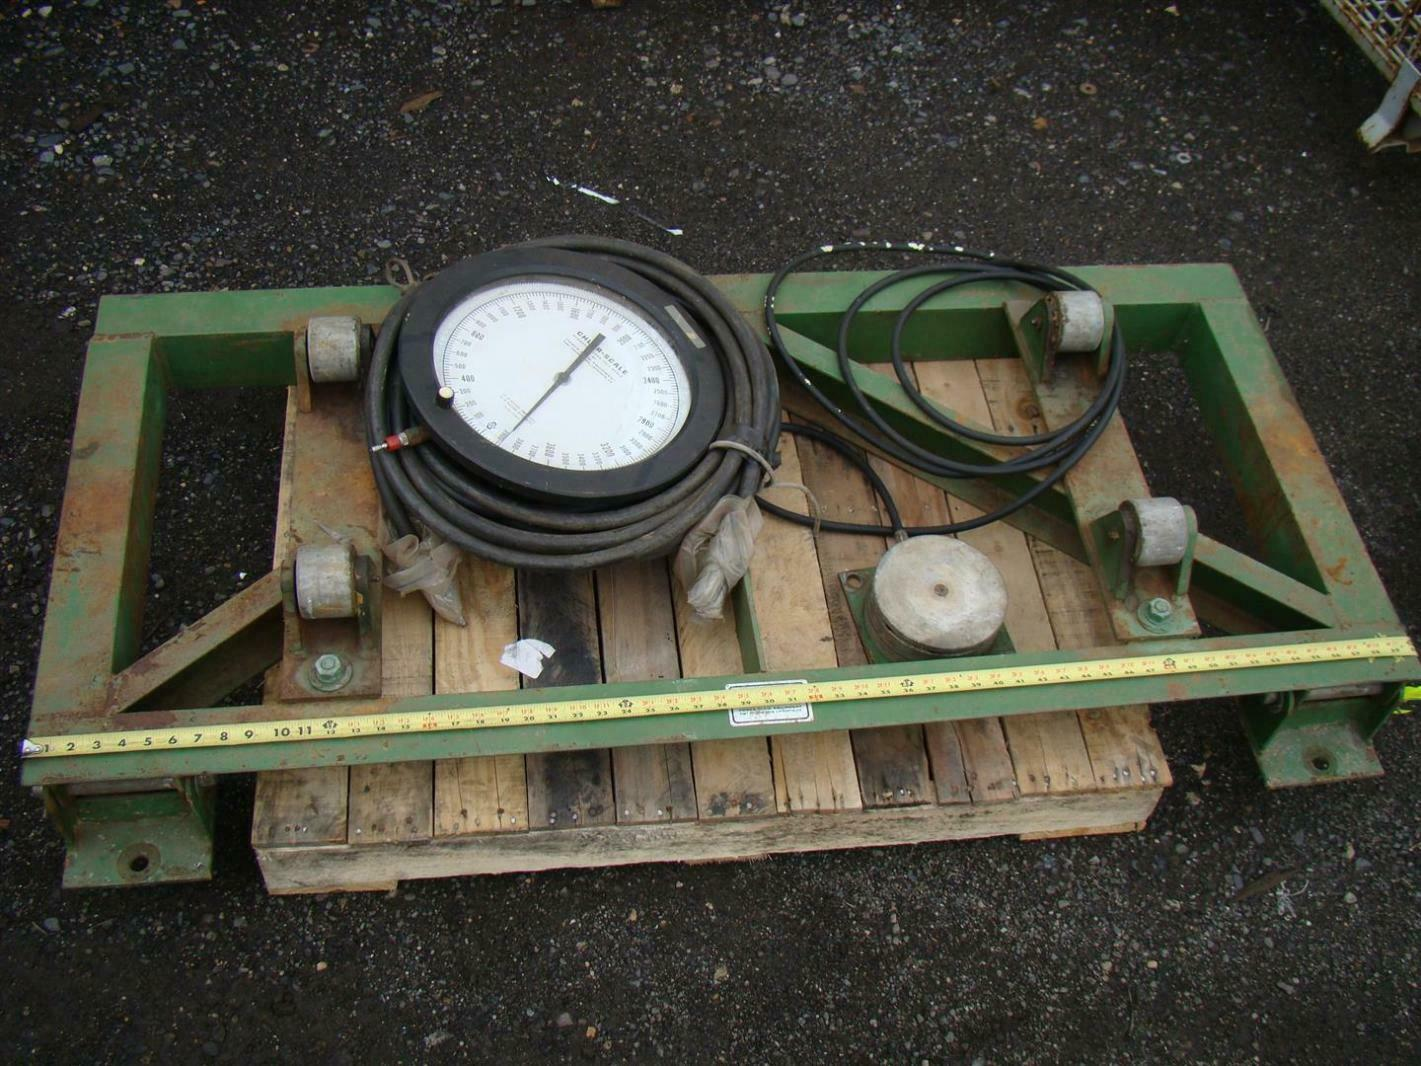 Hydraulic Lift Scale : Chlor scale hydraulic load cell d a ebay